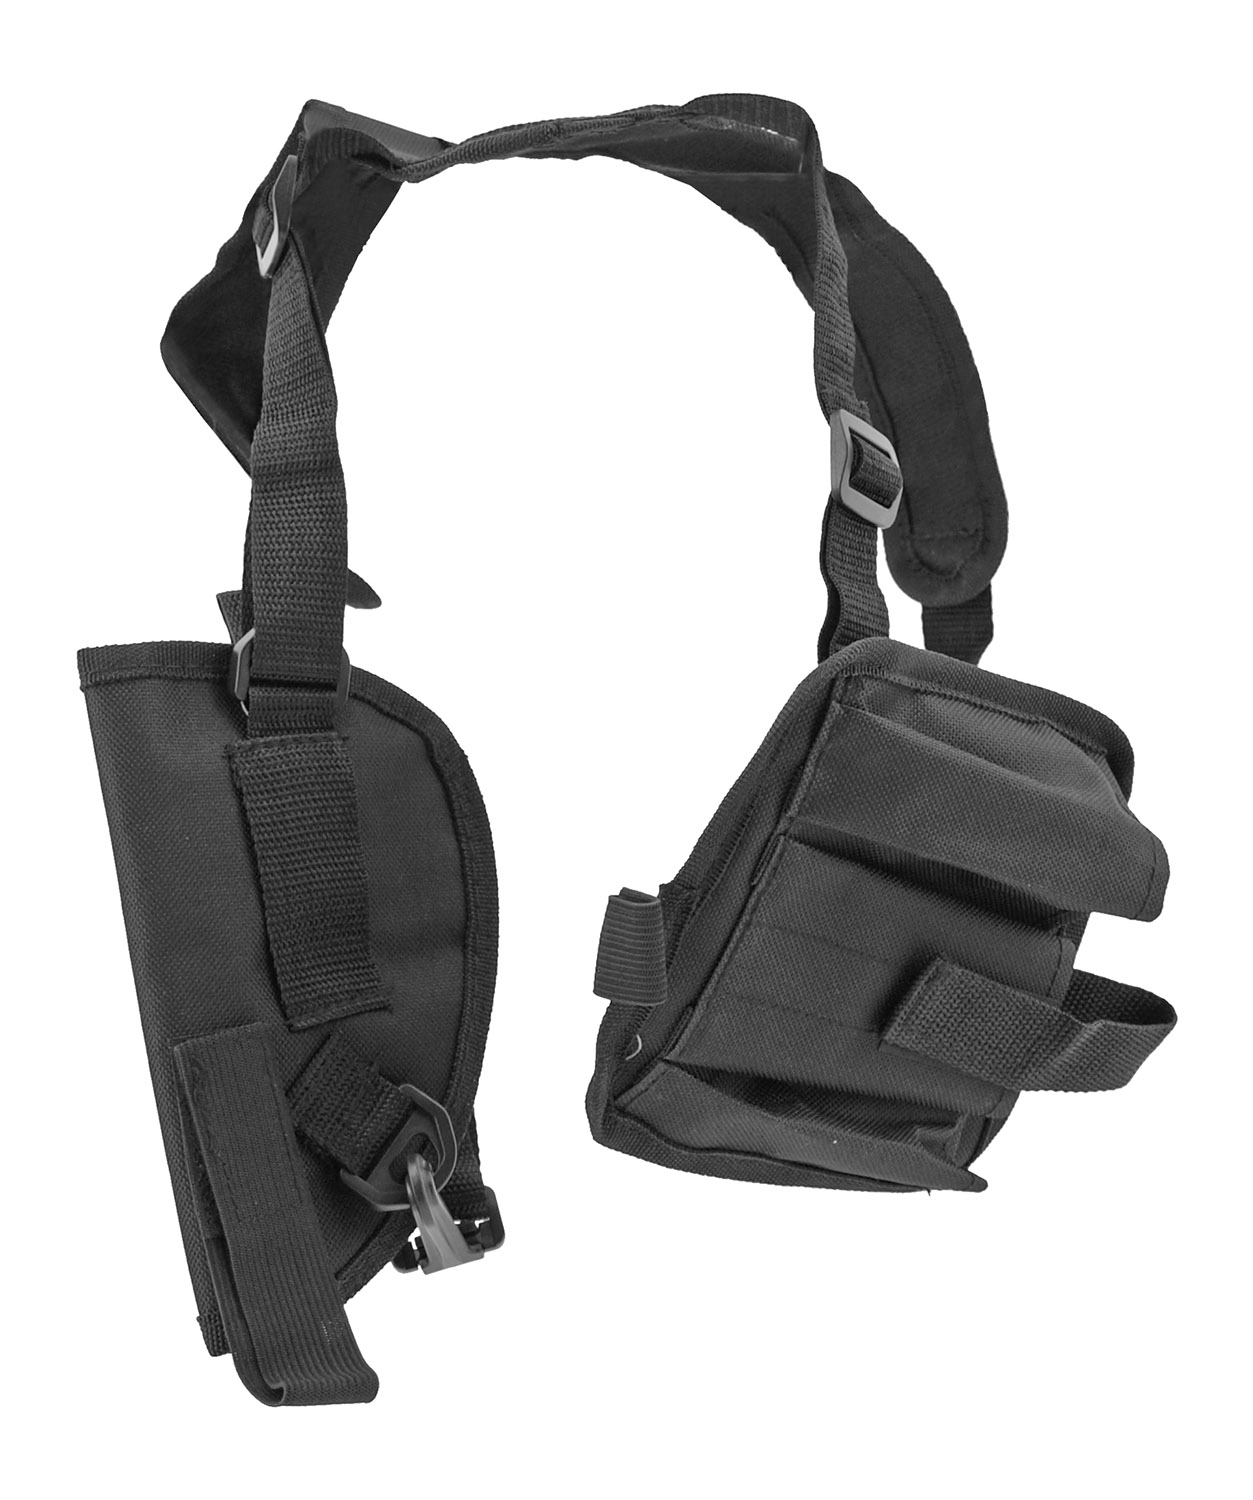 Lancer Tactical Shoulder Gun Holster with Additional Magazine Clip Storage Pouch - Black